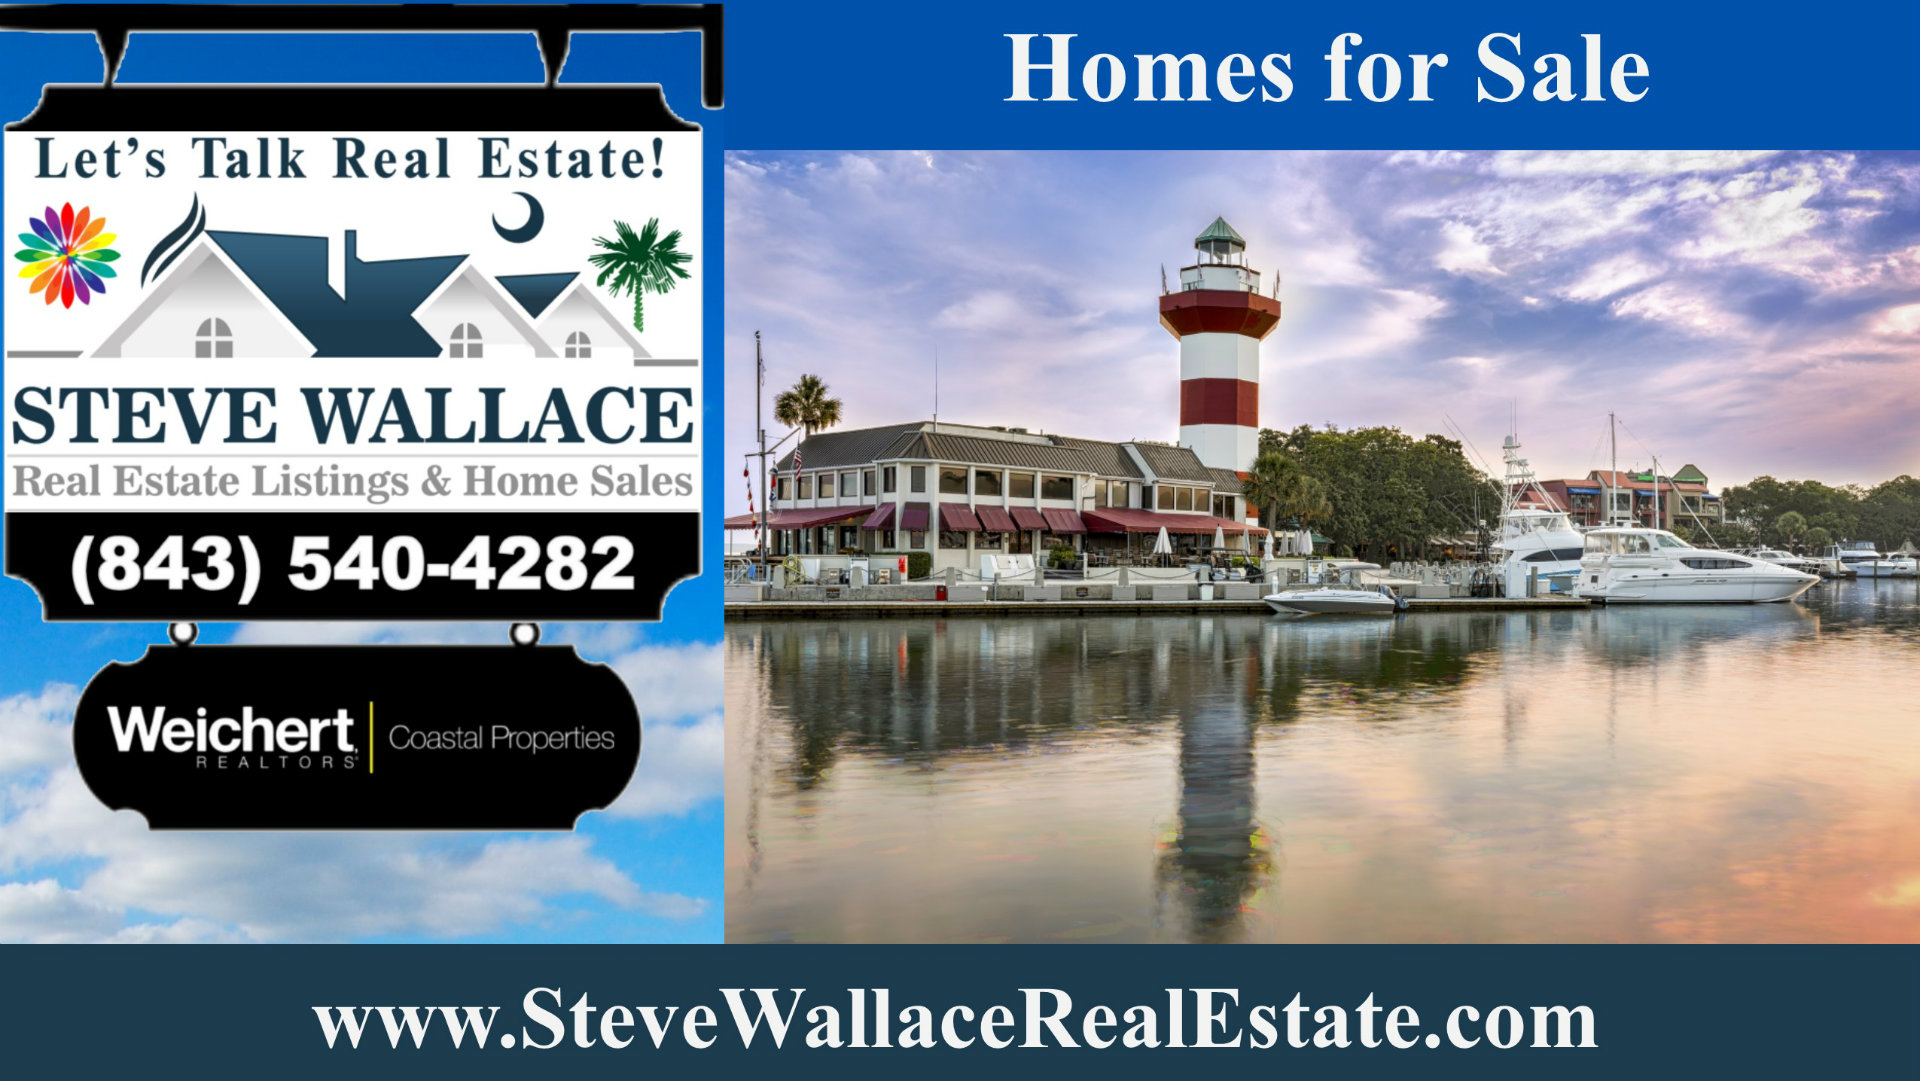 steve wallace sells hilton head island real estate, houses, villas